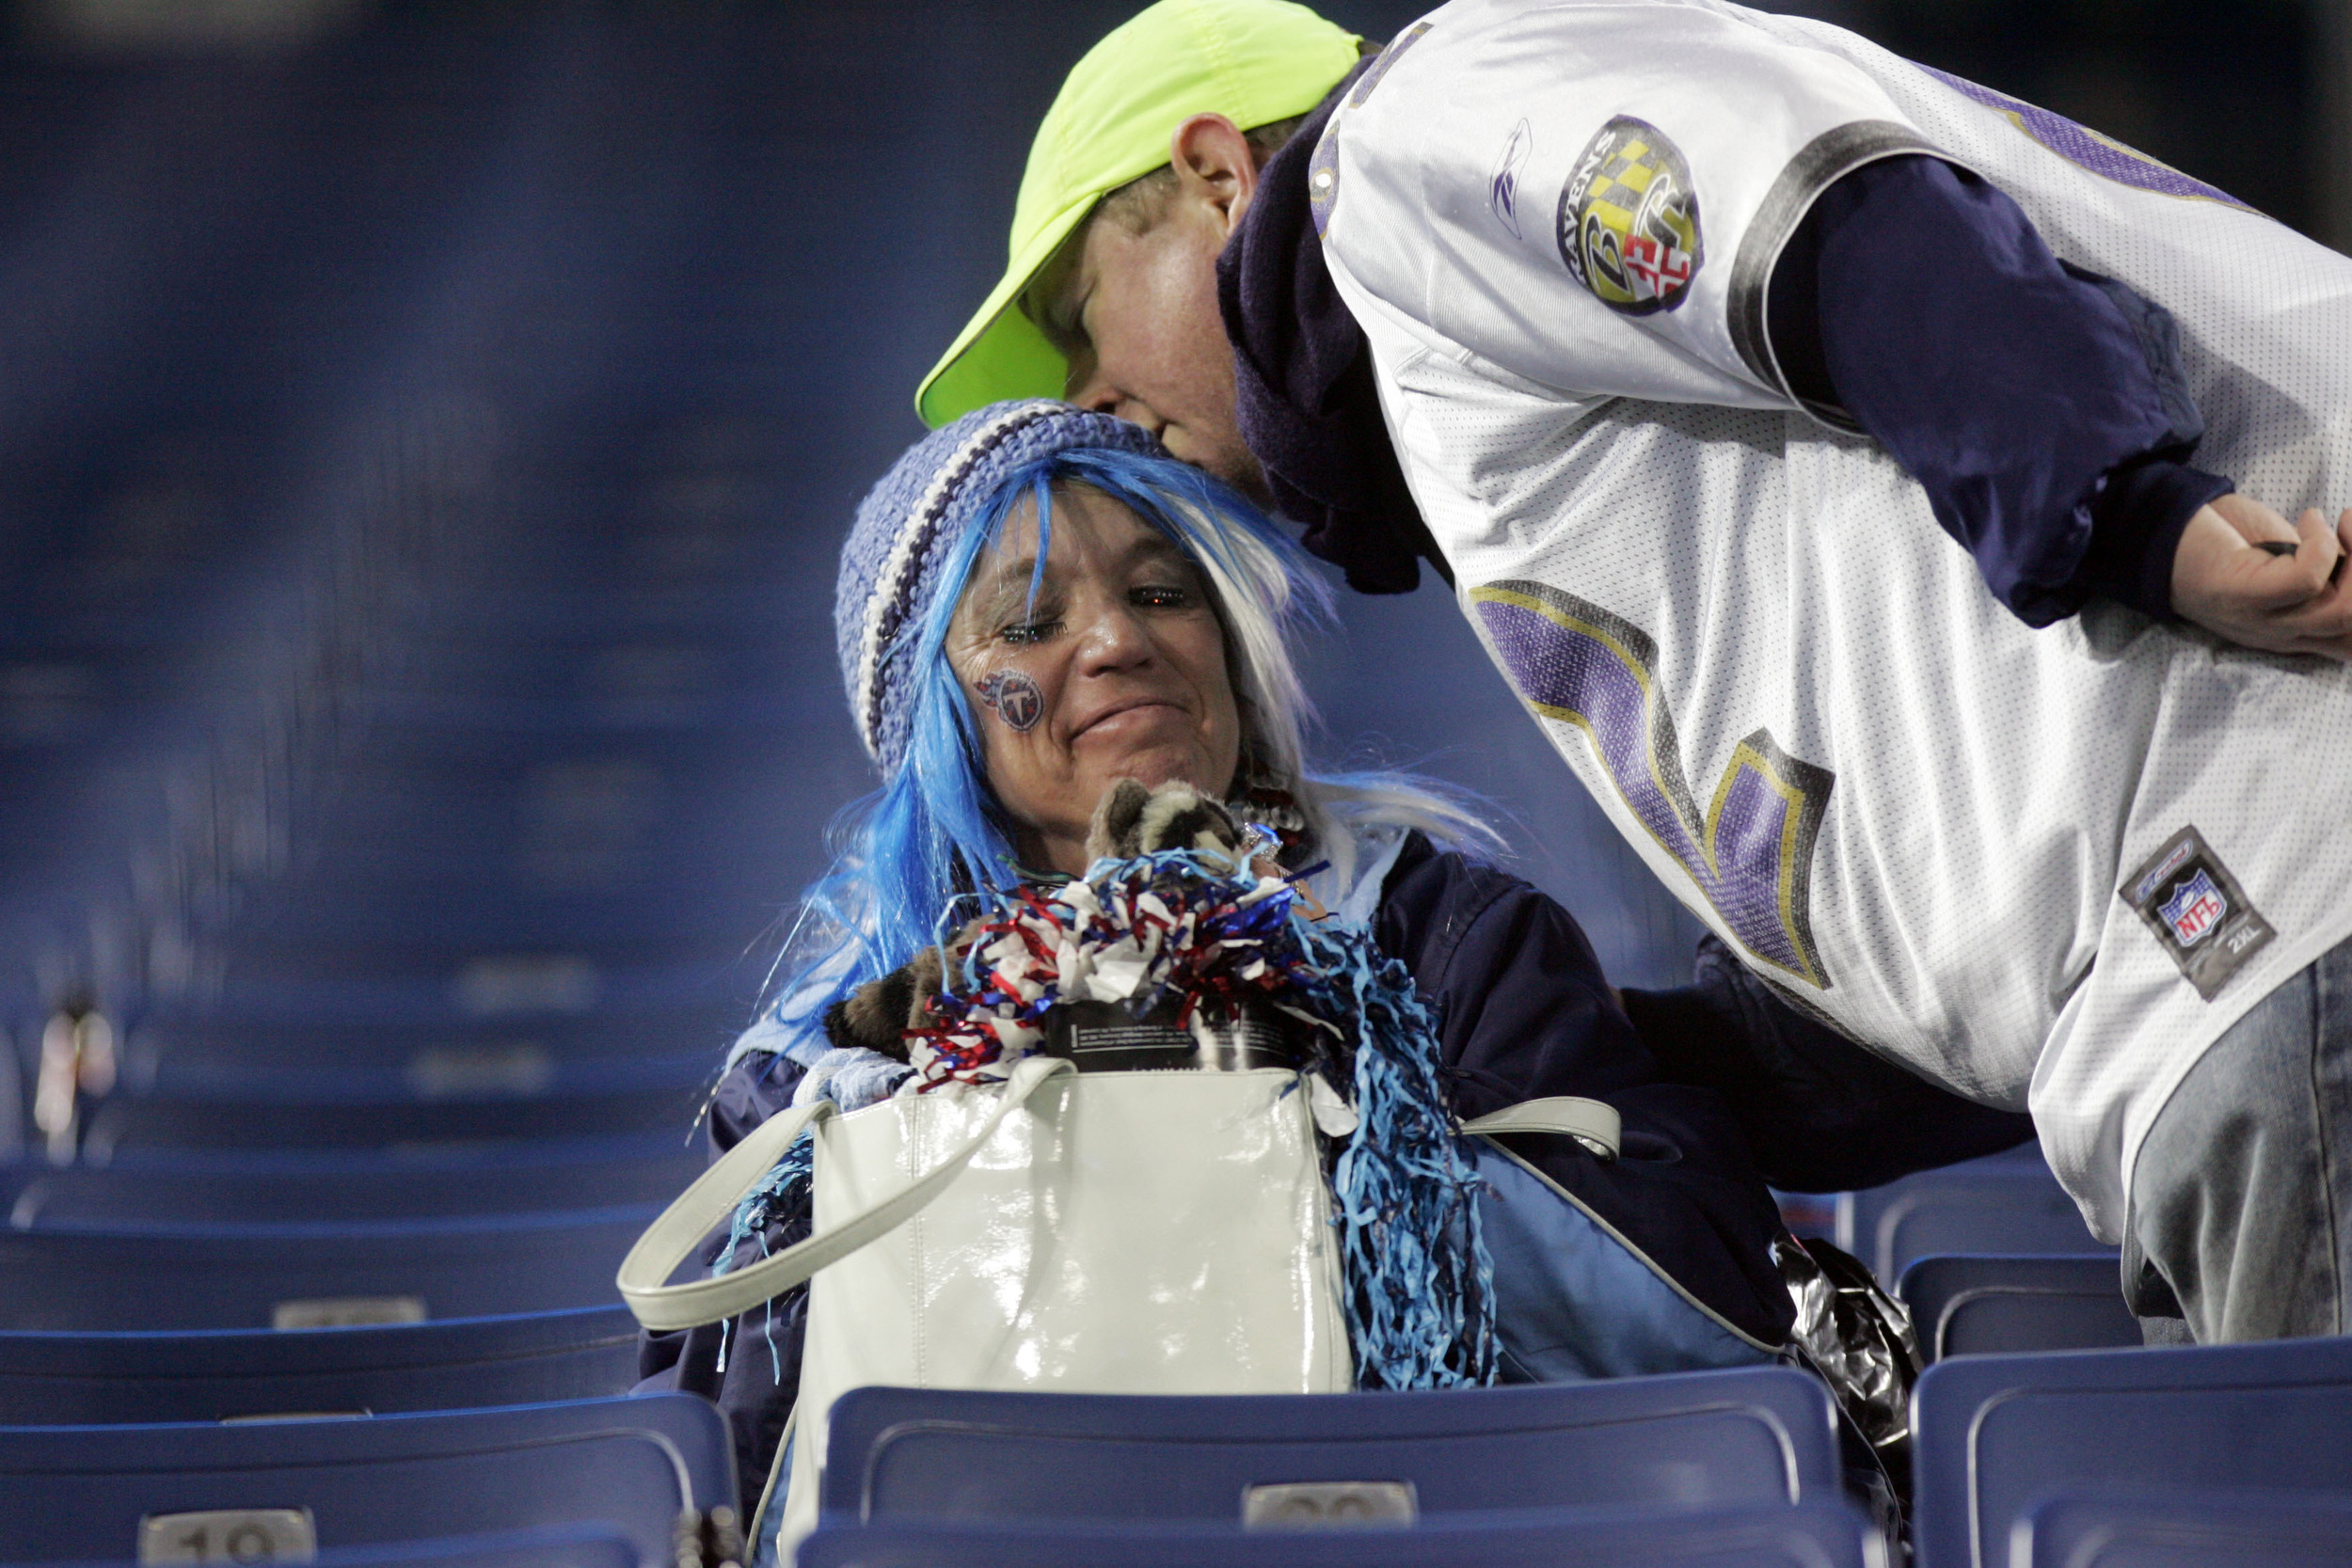 Titans fan Helen Locke gets a consolation kiss from a Ravens fan as she sat depressed in the stands after the Ravens defeated the Titans in the playoffs, smashing hopes of a Titans Superbowl at LP Field Saturday, January 10, 2009 in Nashville, Tenn.